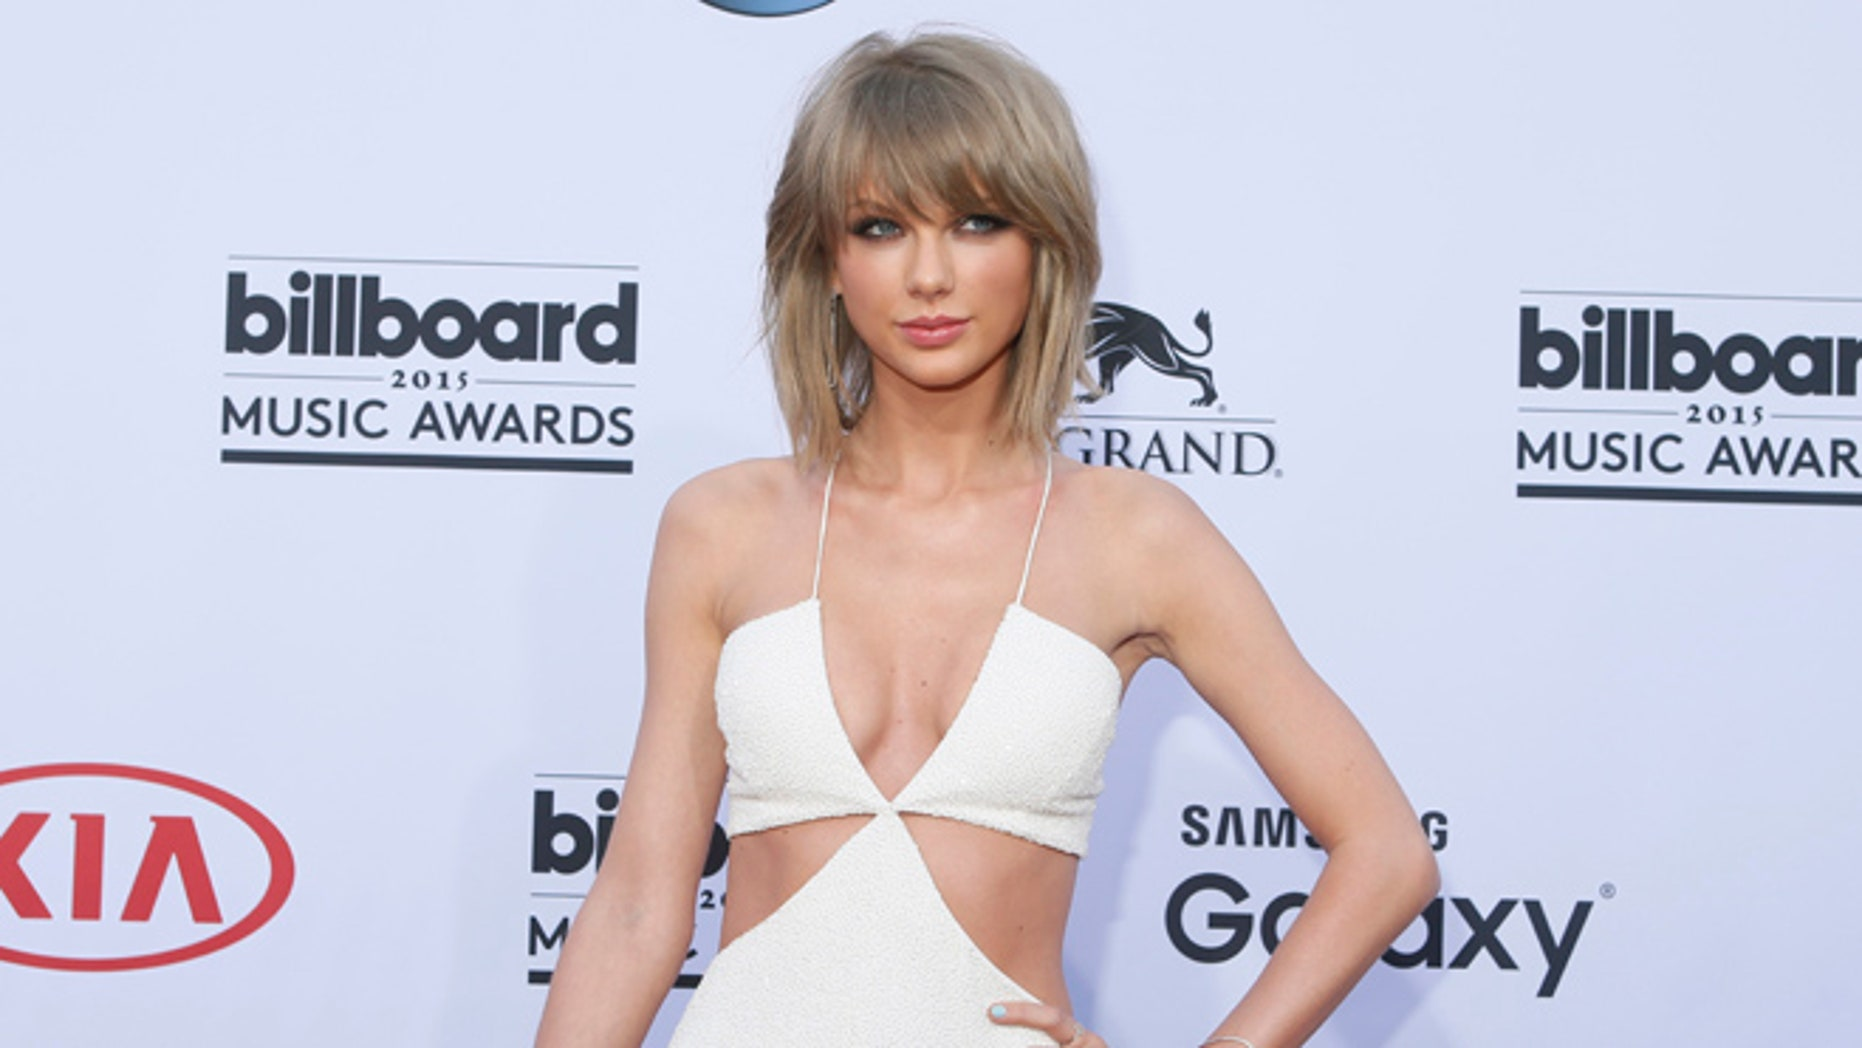 May 17, 2015. Singer Taylor Swift arrives at the 2015 Billboard Music Awards in Las Vegas, Nevada.